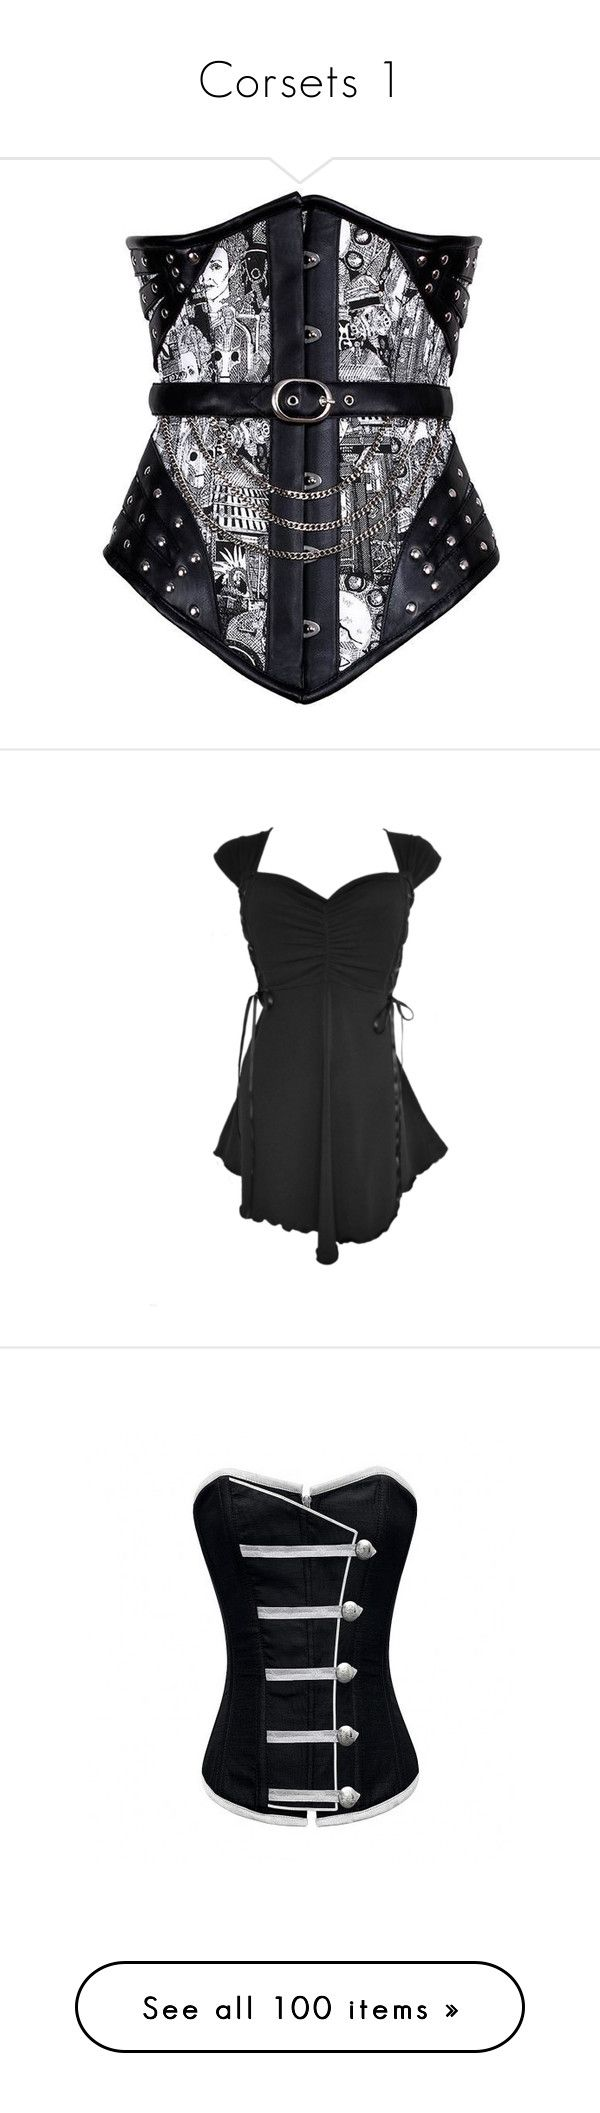 """""""Corsets 1"""" by xblackbettyx ❤ liked on Polyvore featuring intimates, shapewear, corsets, tops, dresses, shirts, plus size gothic corsets, plus size corsets, goth shirts and gothic corset top"""